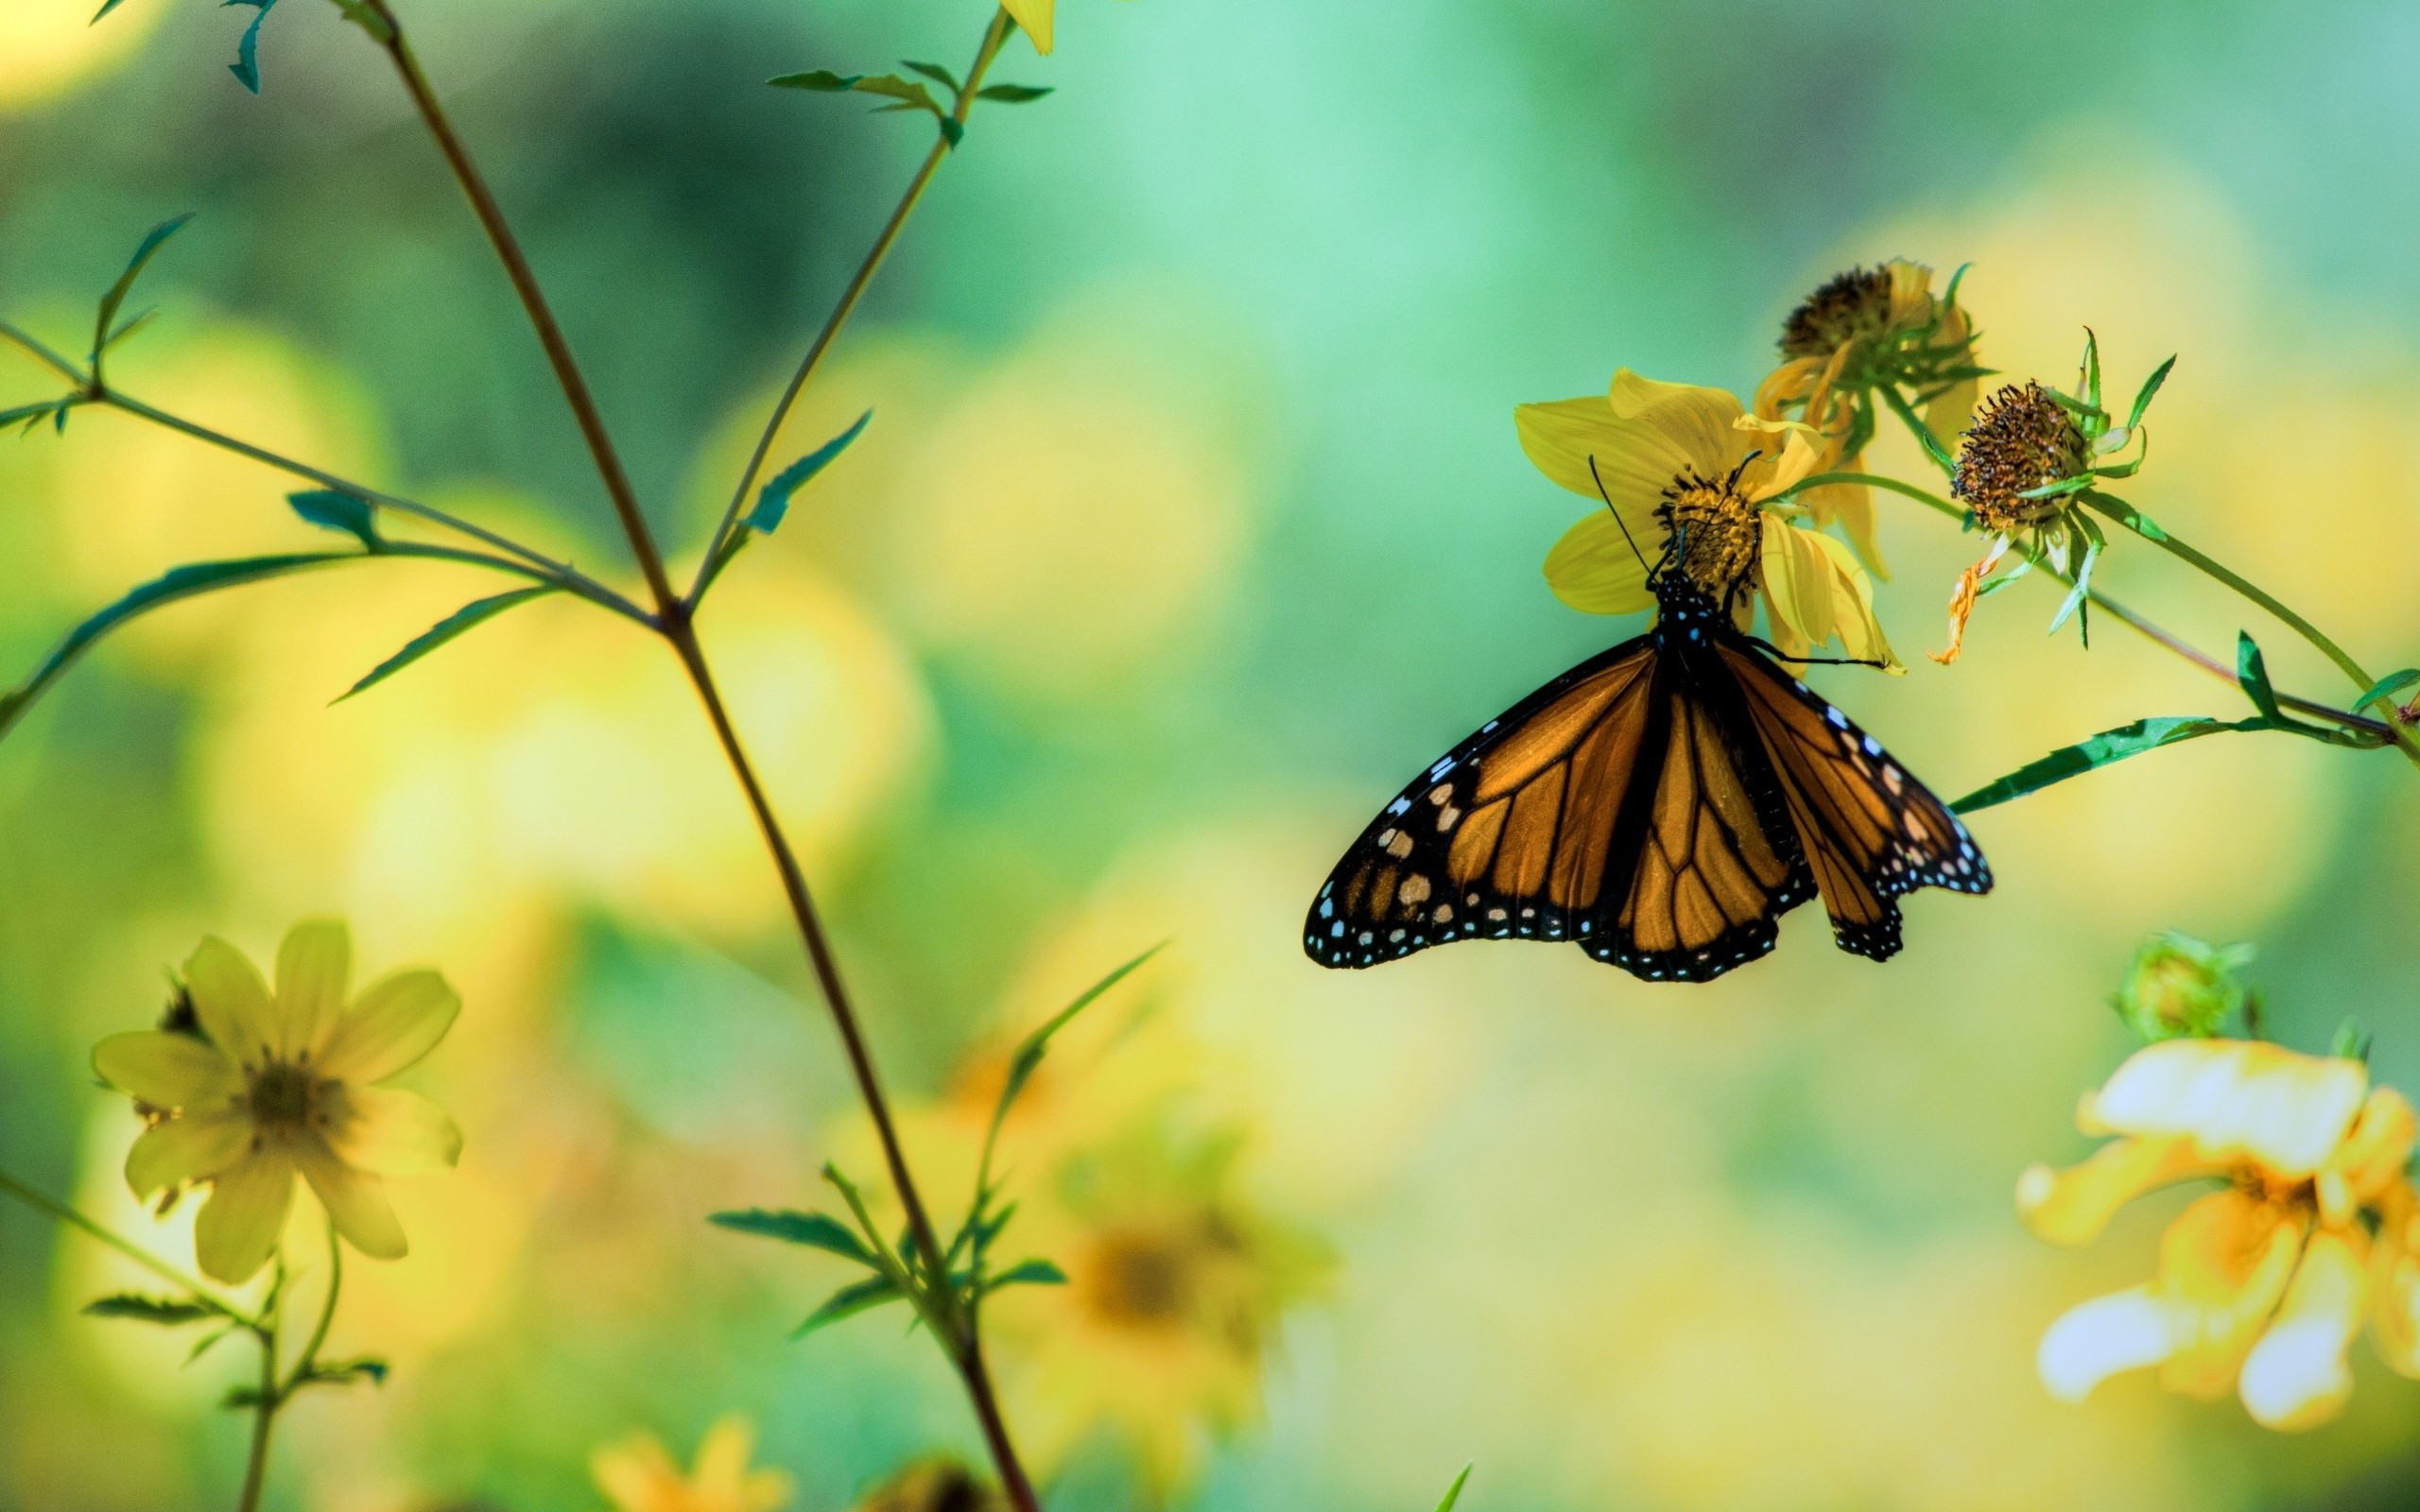 Daily Wallpaper Butterfly Garden I Like To Waste My Time 2560x1600